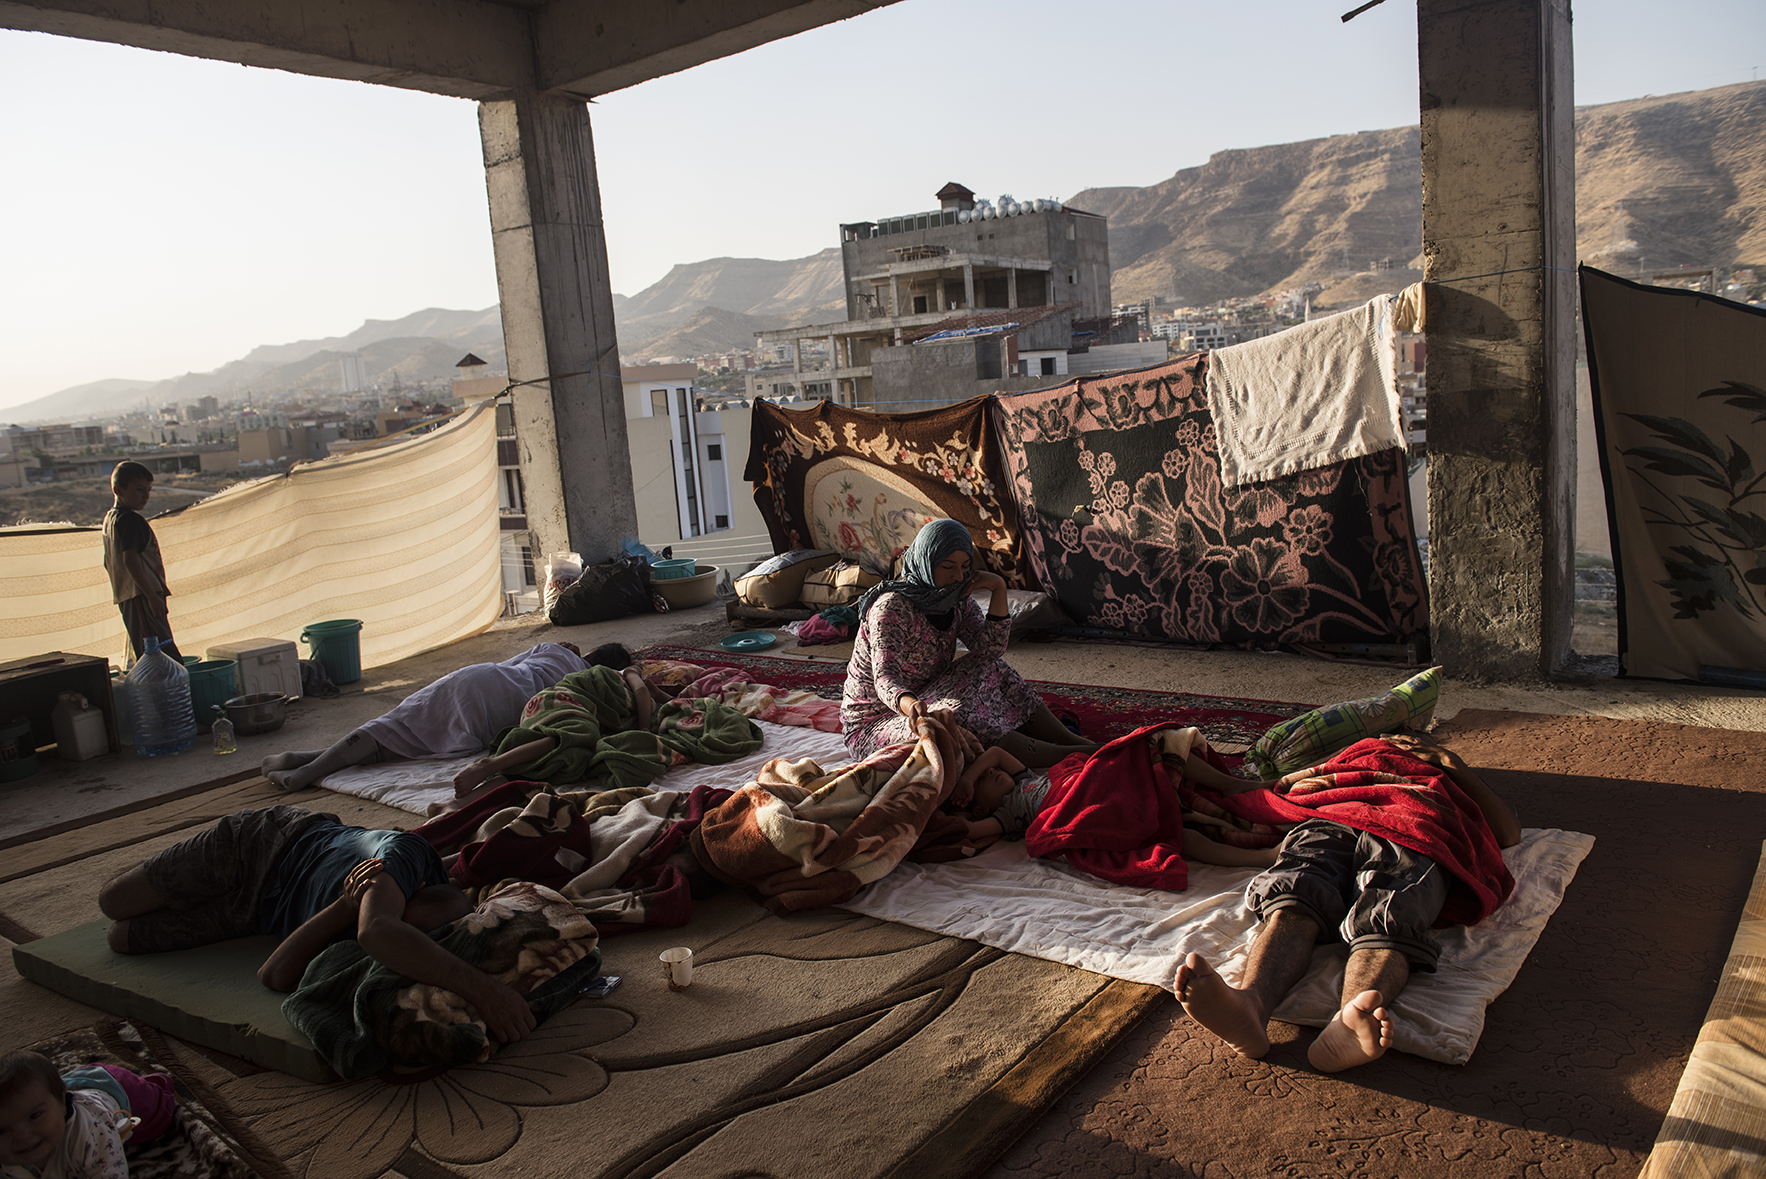 Iraqi Yazidi families live in partially constructed buildings in Dohuk, in Northern Iraq, August 17, 2014.  Since fighters with the Islamic State started pushing through Iraq and murdering and terrorizing thousands of civilians, thousands have been displaced from their homes across the country.  The United Nations is beginning its largest humanitarian aid distribution in a decade.